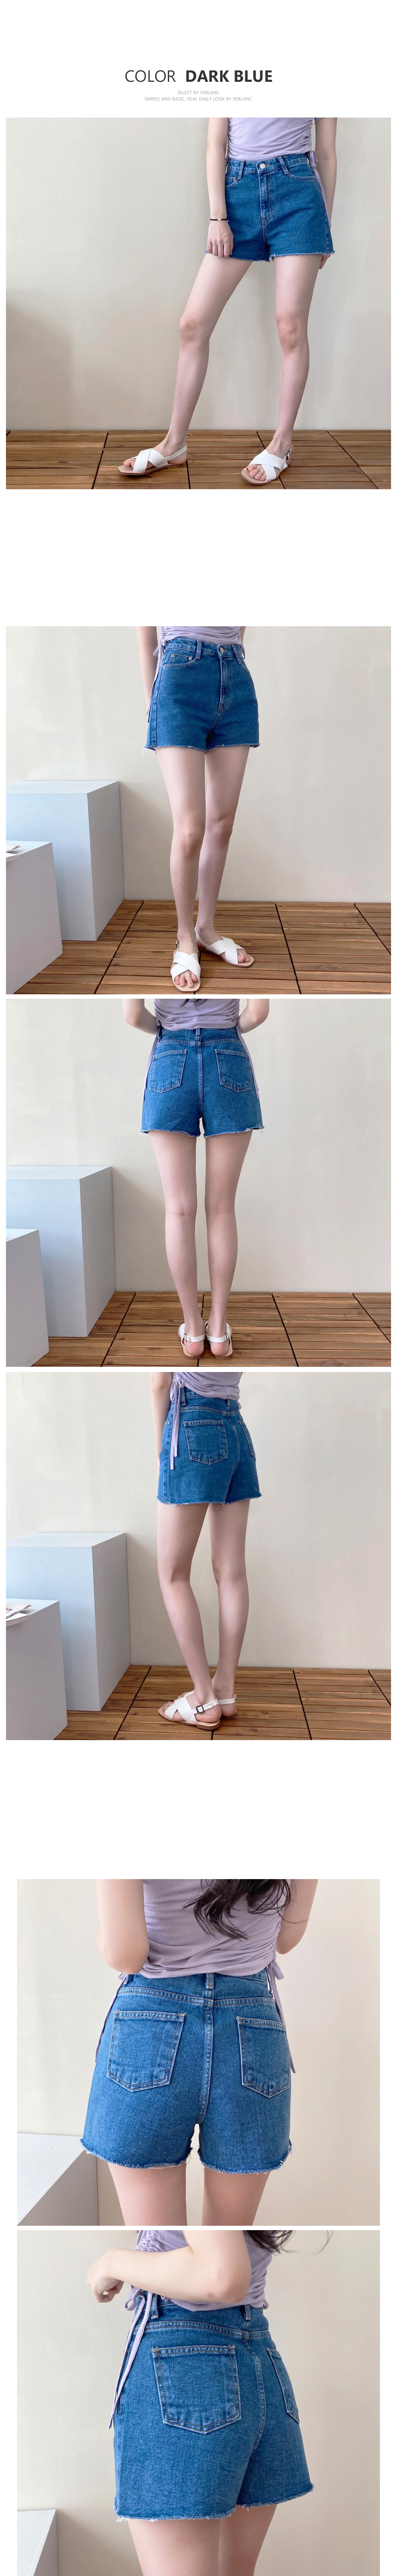 Casual mood cutting jeans P#YW464